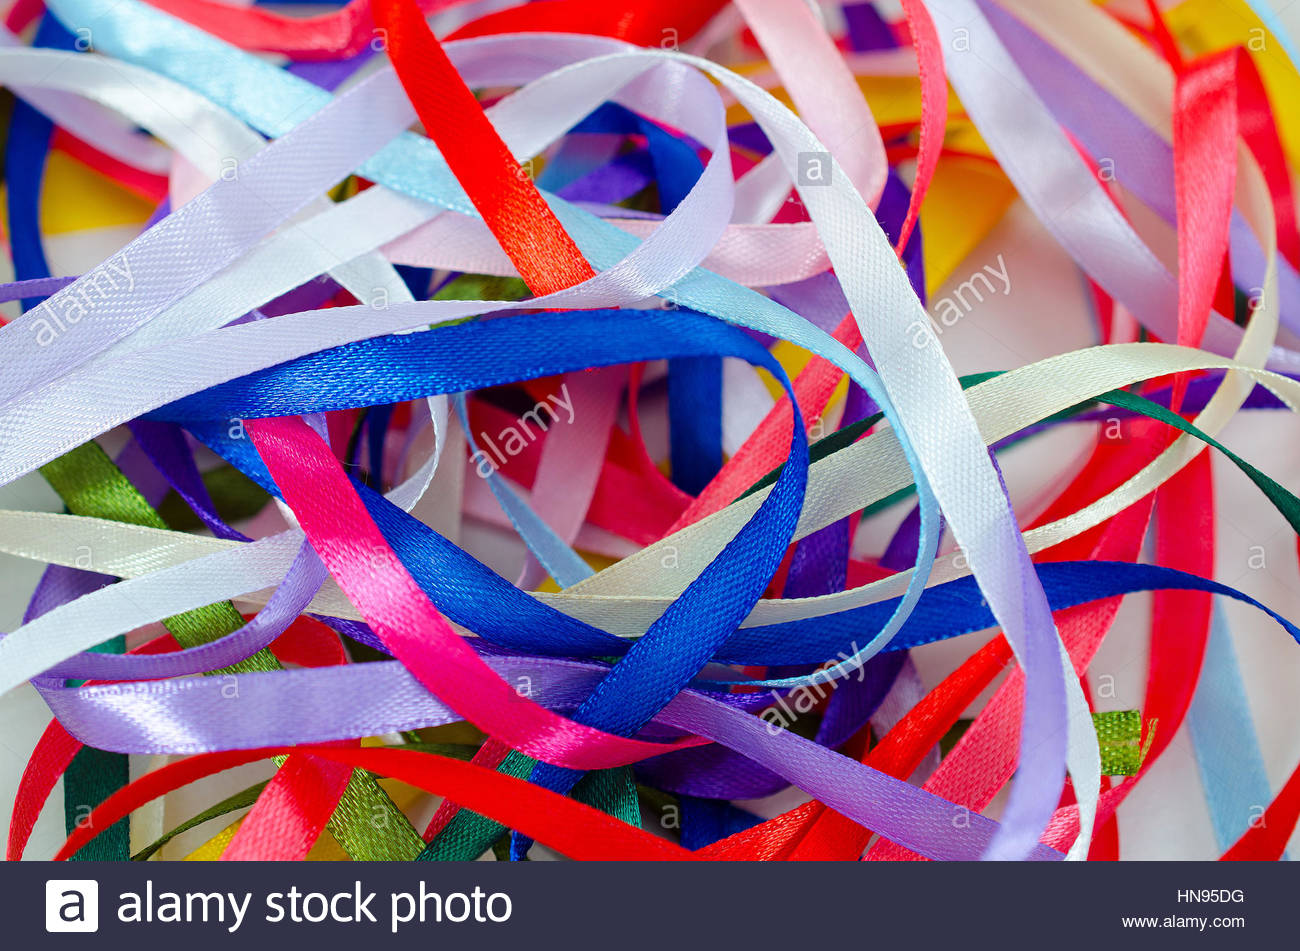 Multi-colored satin ribbons on a white background. Colorful beautiful abstract background. - Stock Image